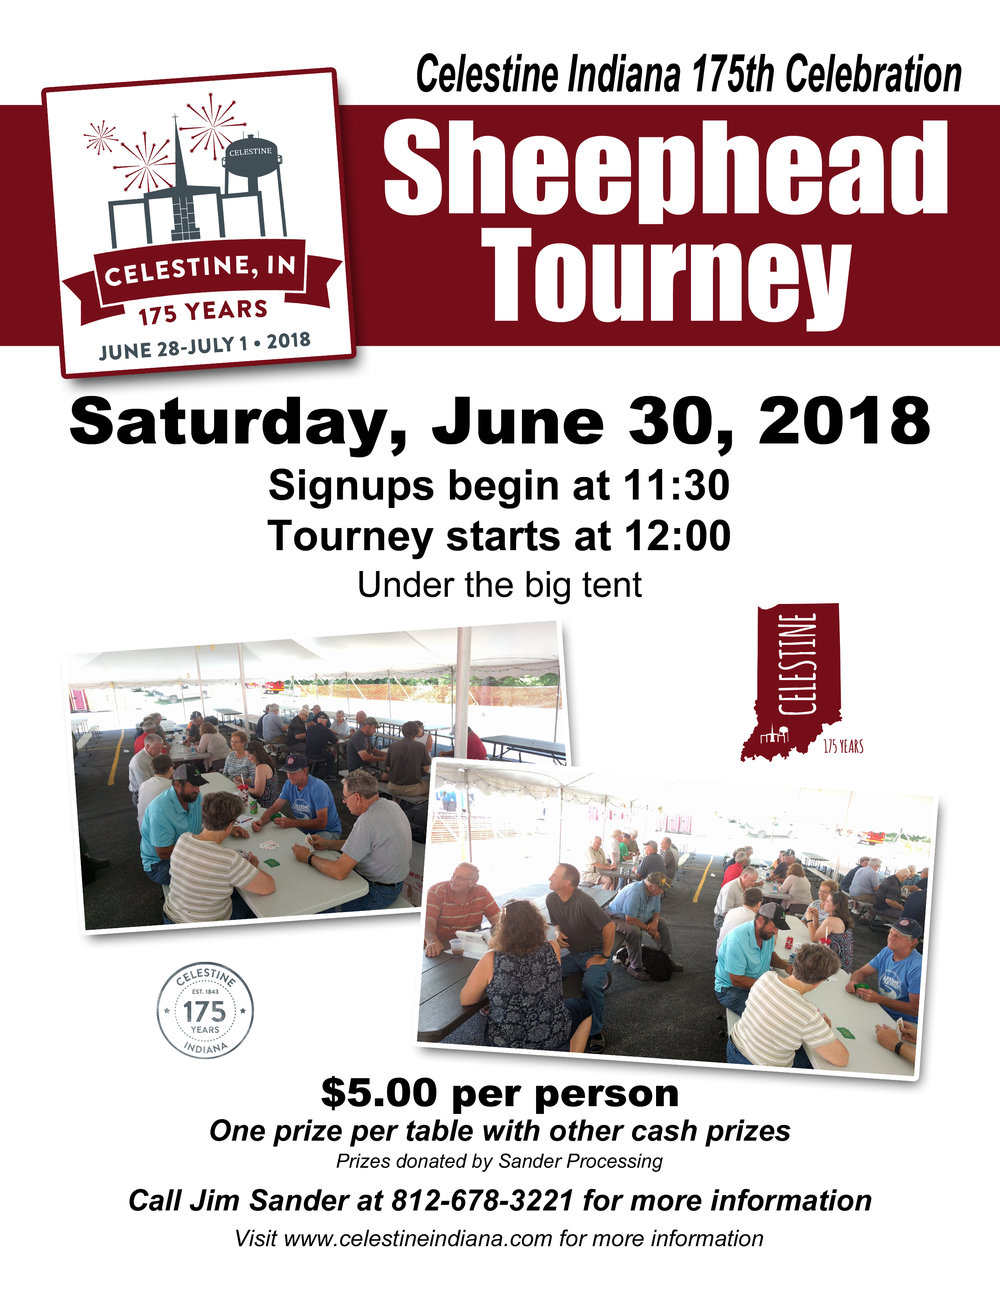 Sheephead Tourney-New Correct One.jpg